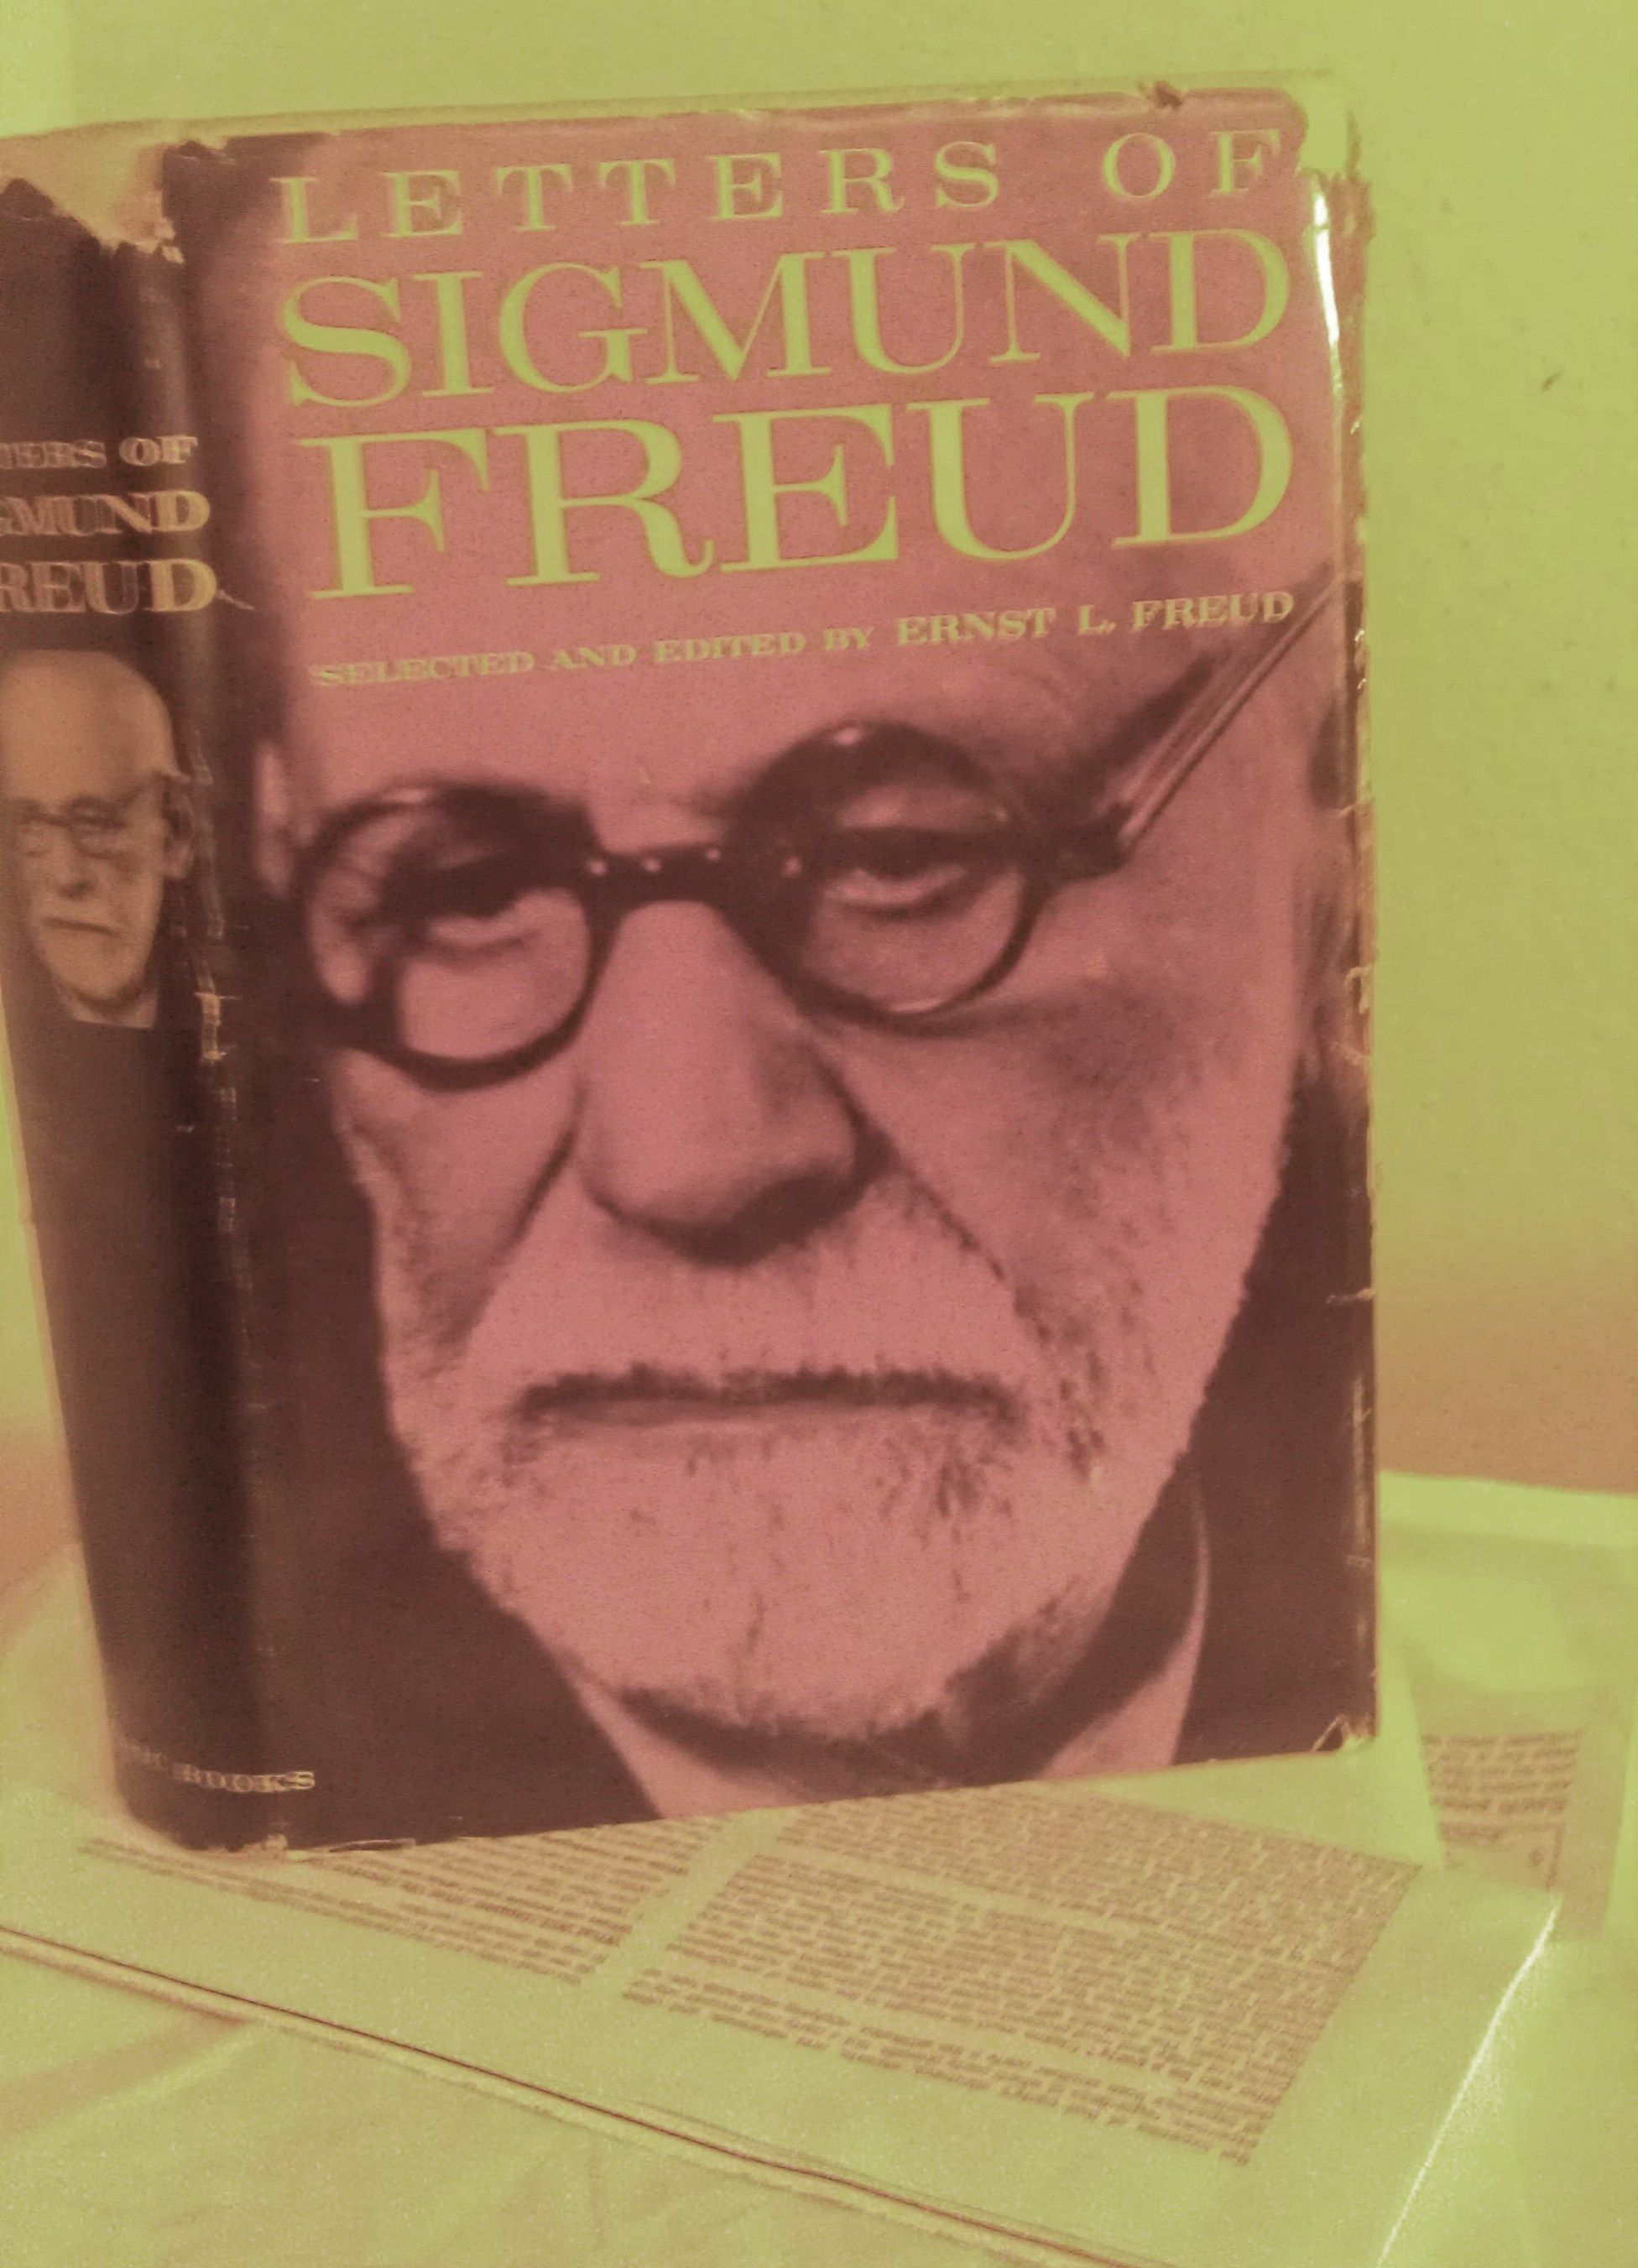 Sigmund Freud Libros Pin By Liz Guerrero On Psychology Pinterest Sigmund Freud